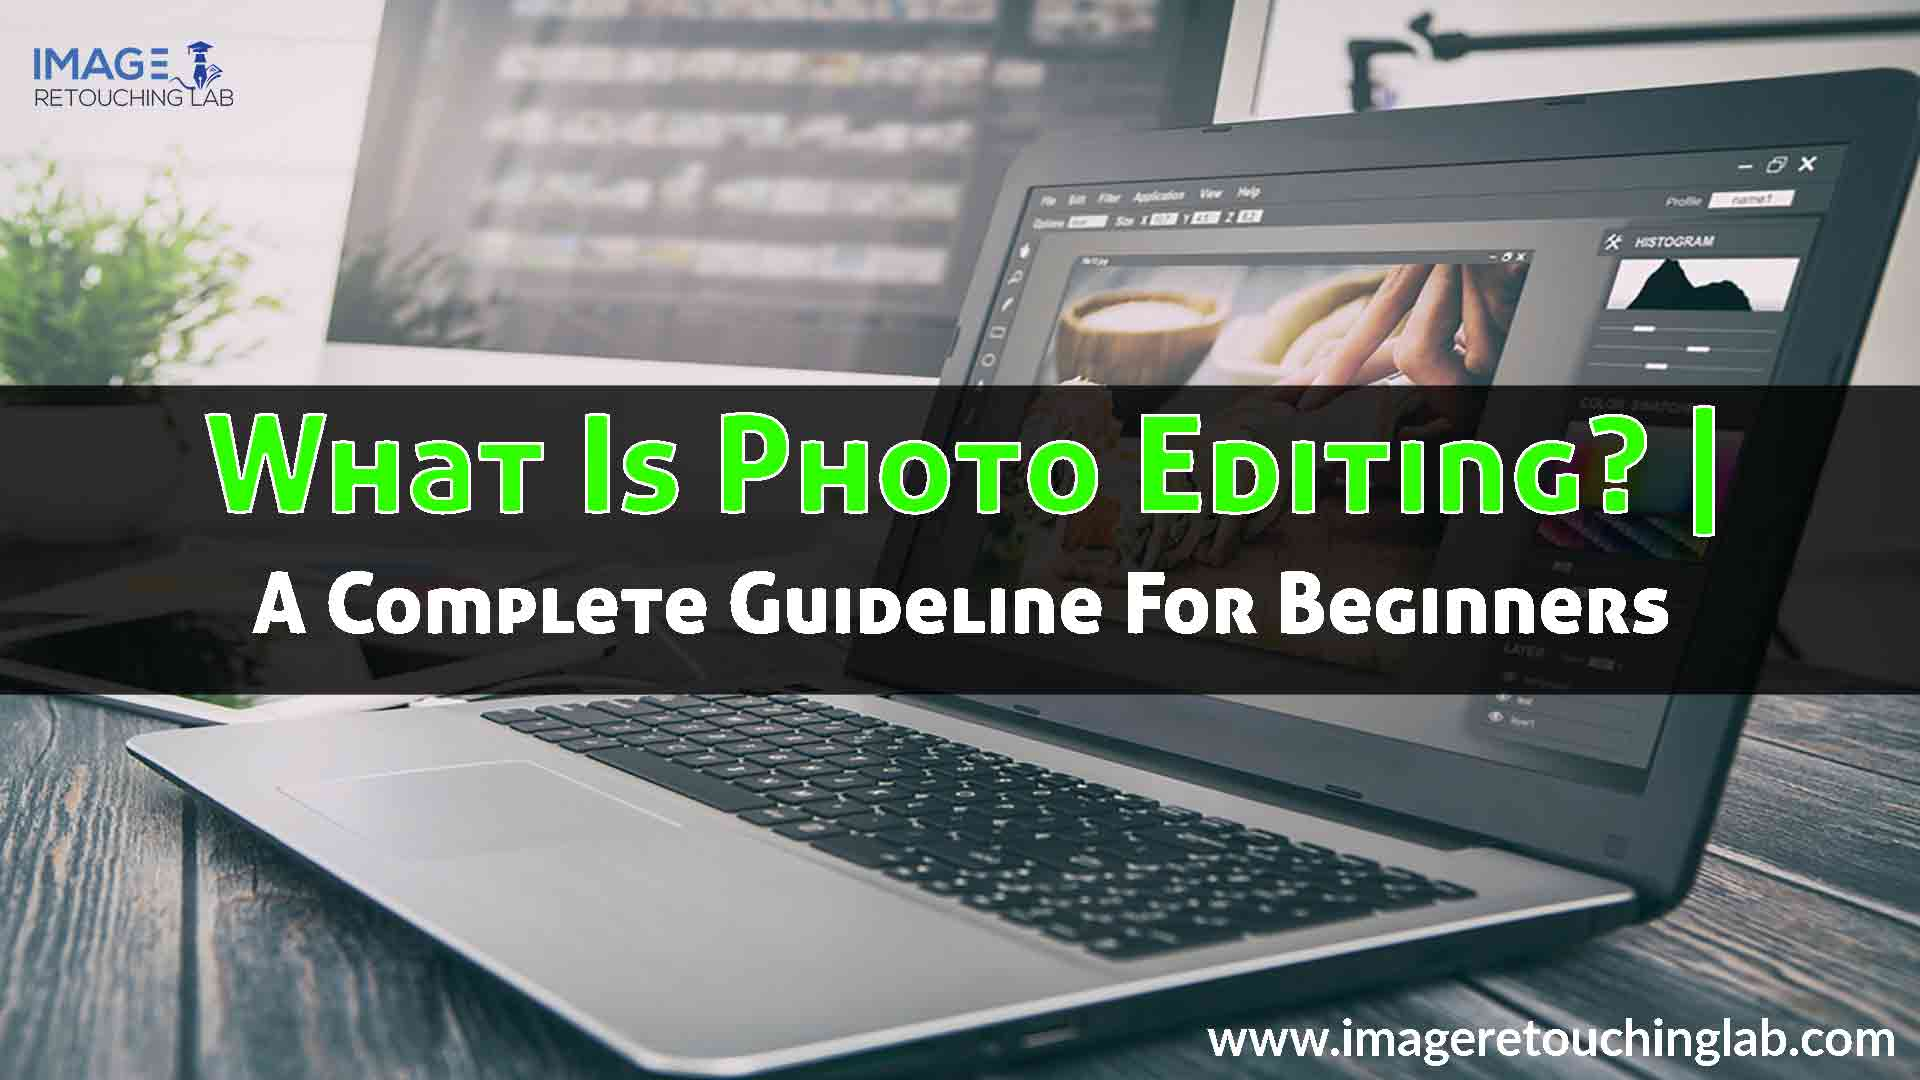 A Complete Guideline For Beginners What Is Photo Editing?